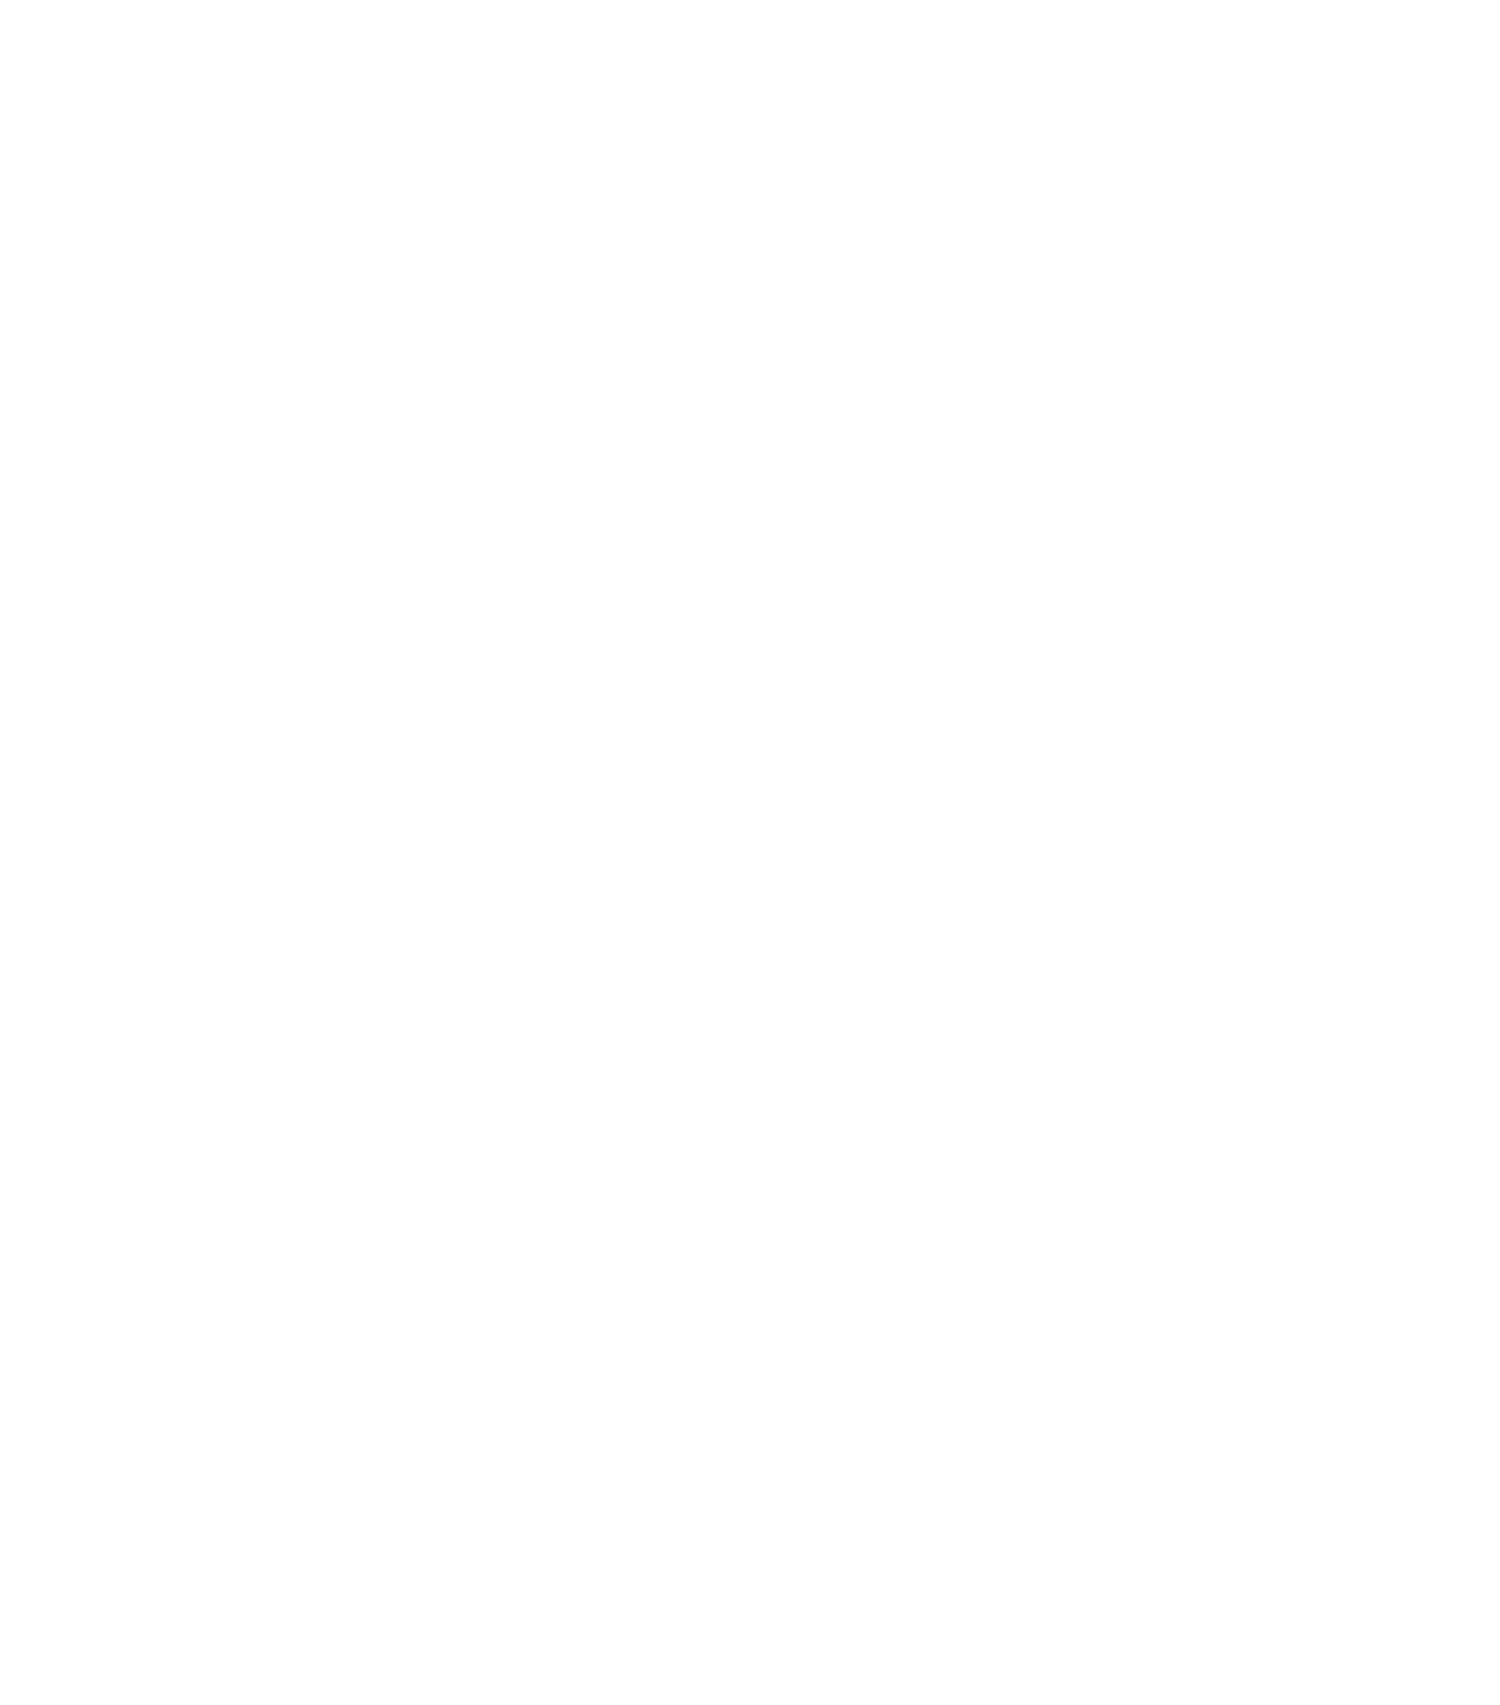 Olympe Bille Personal trainer